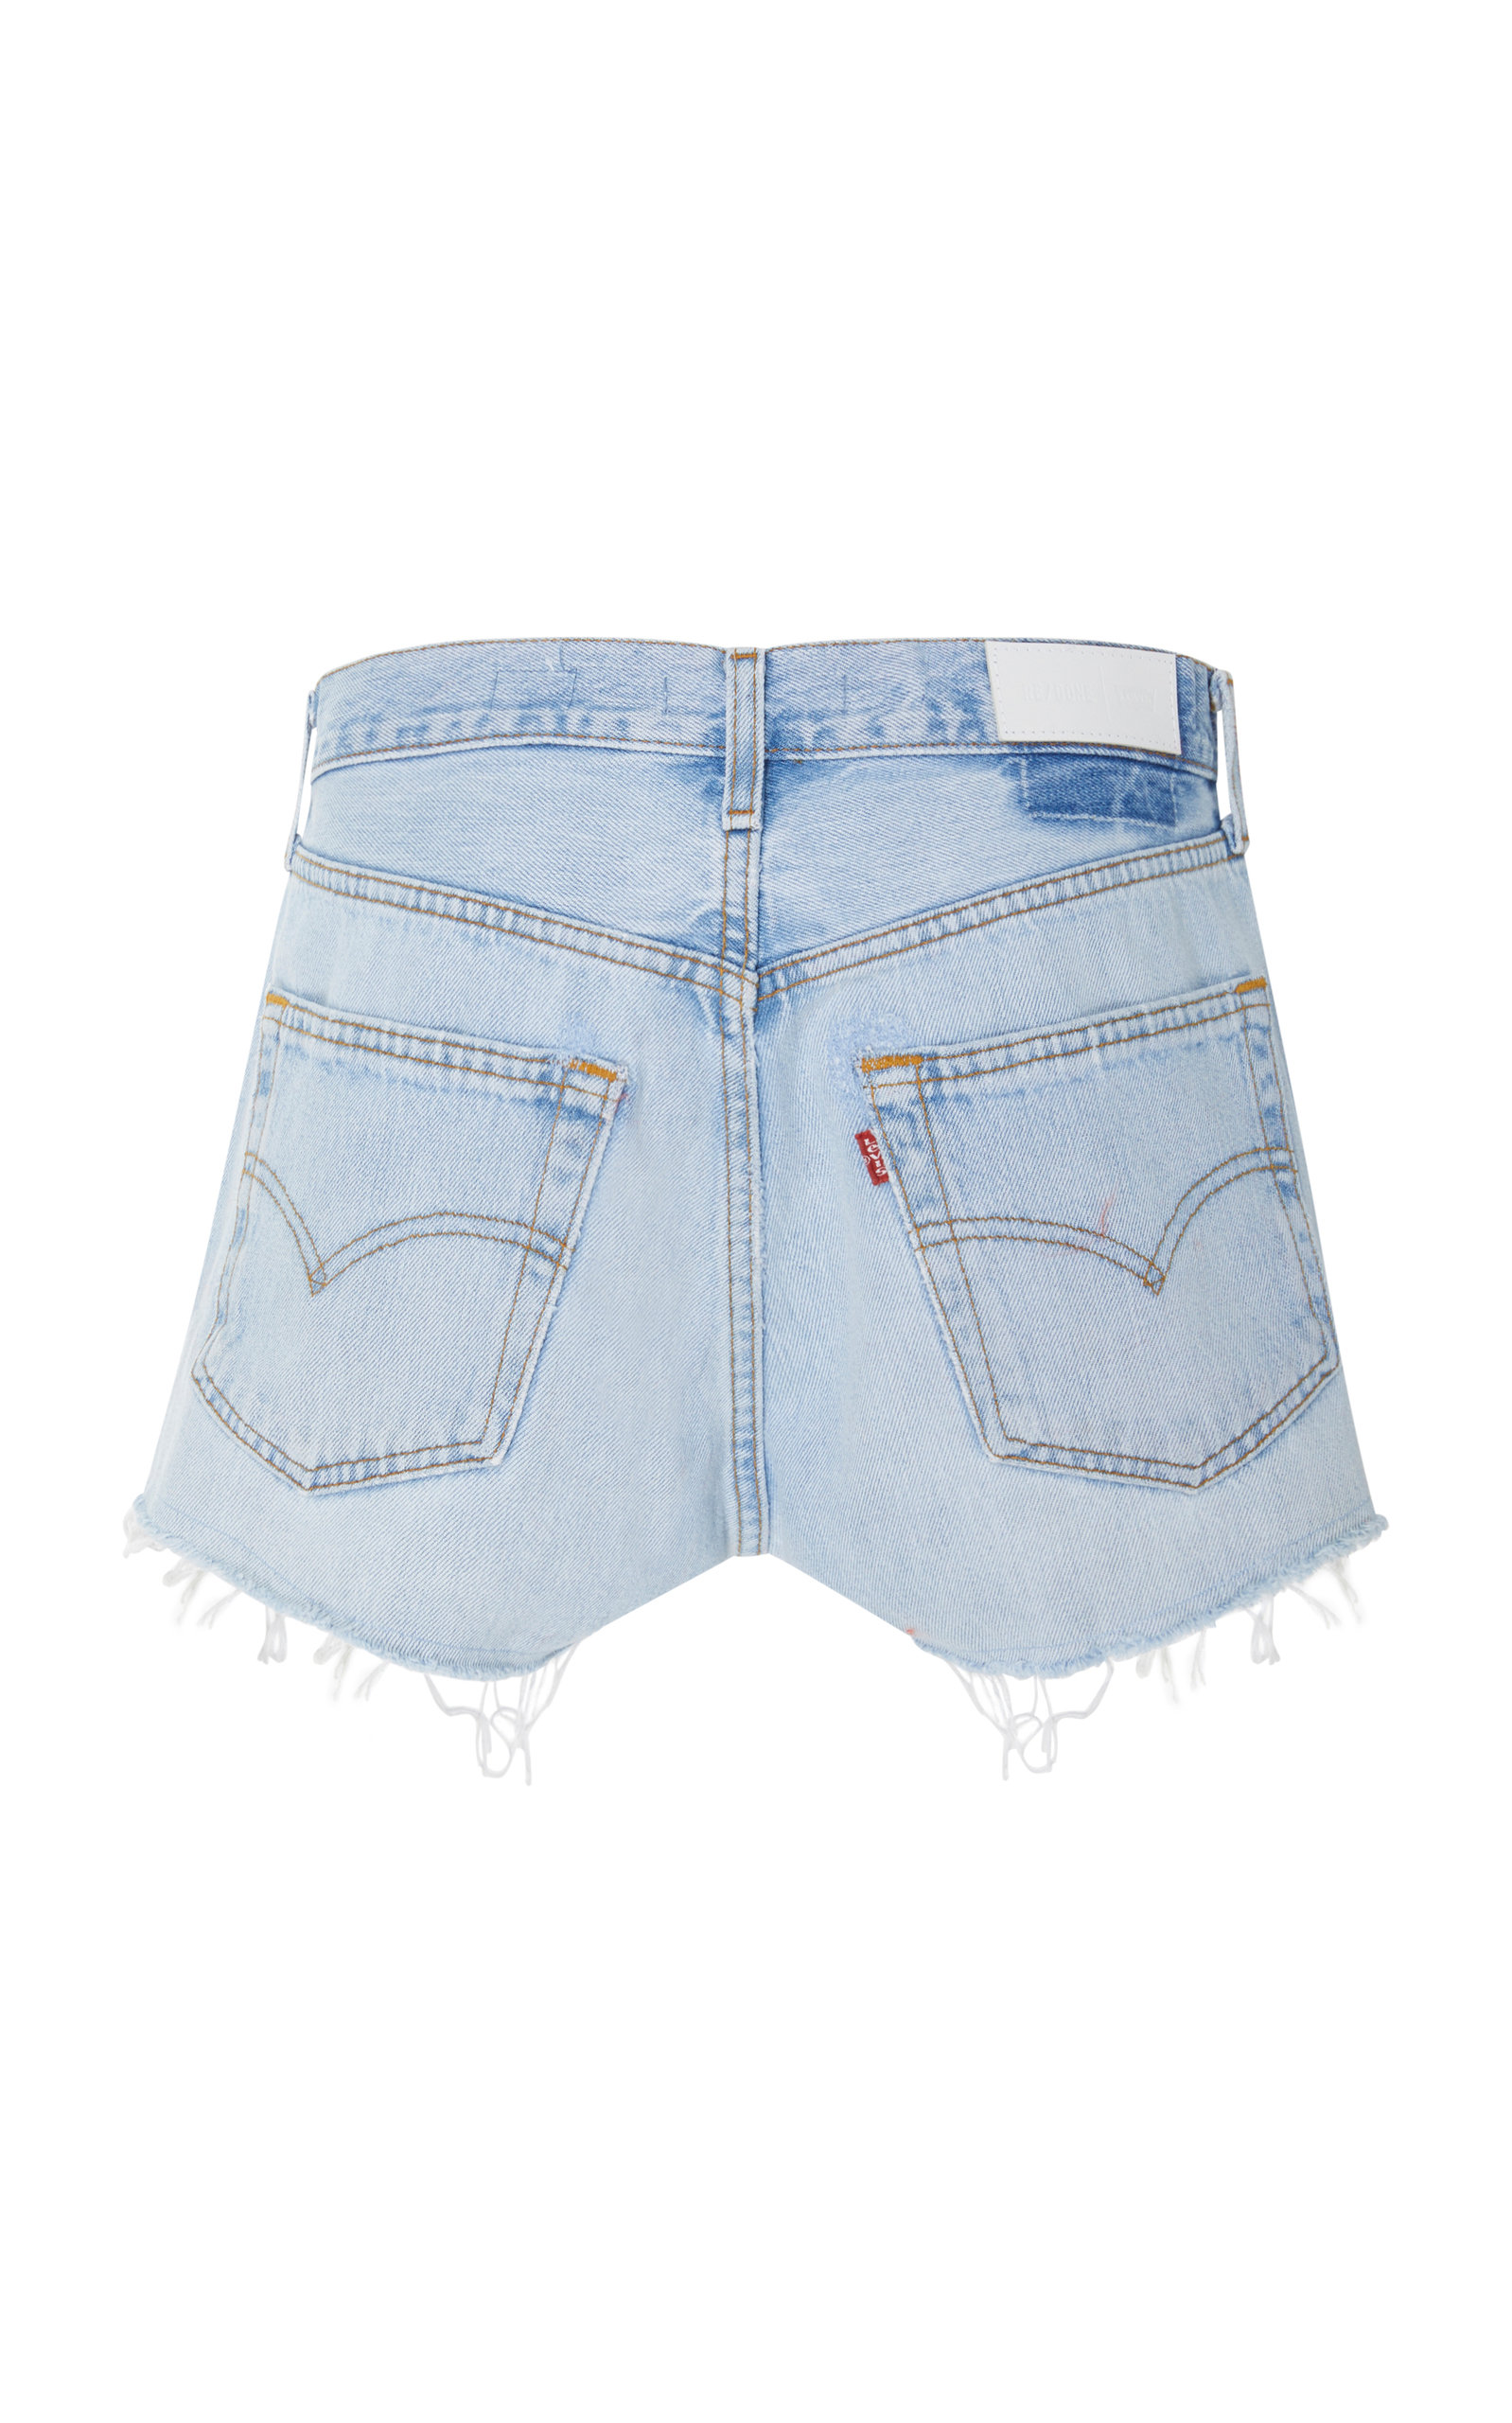 5bf25a2a Re/doneVintage Levi's Denim Shorts. CLOSE. Loading. Loading